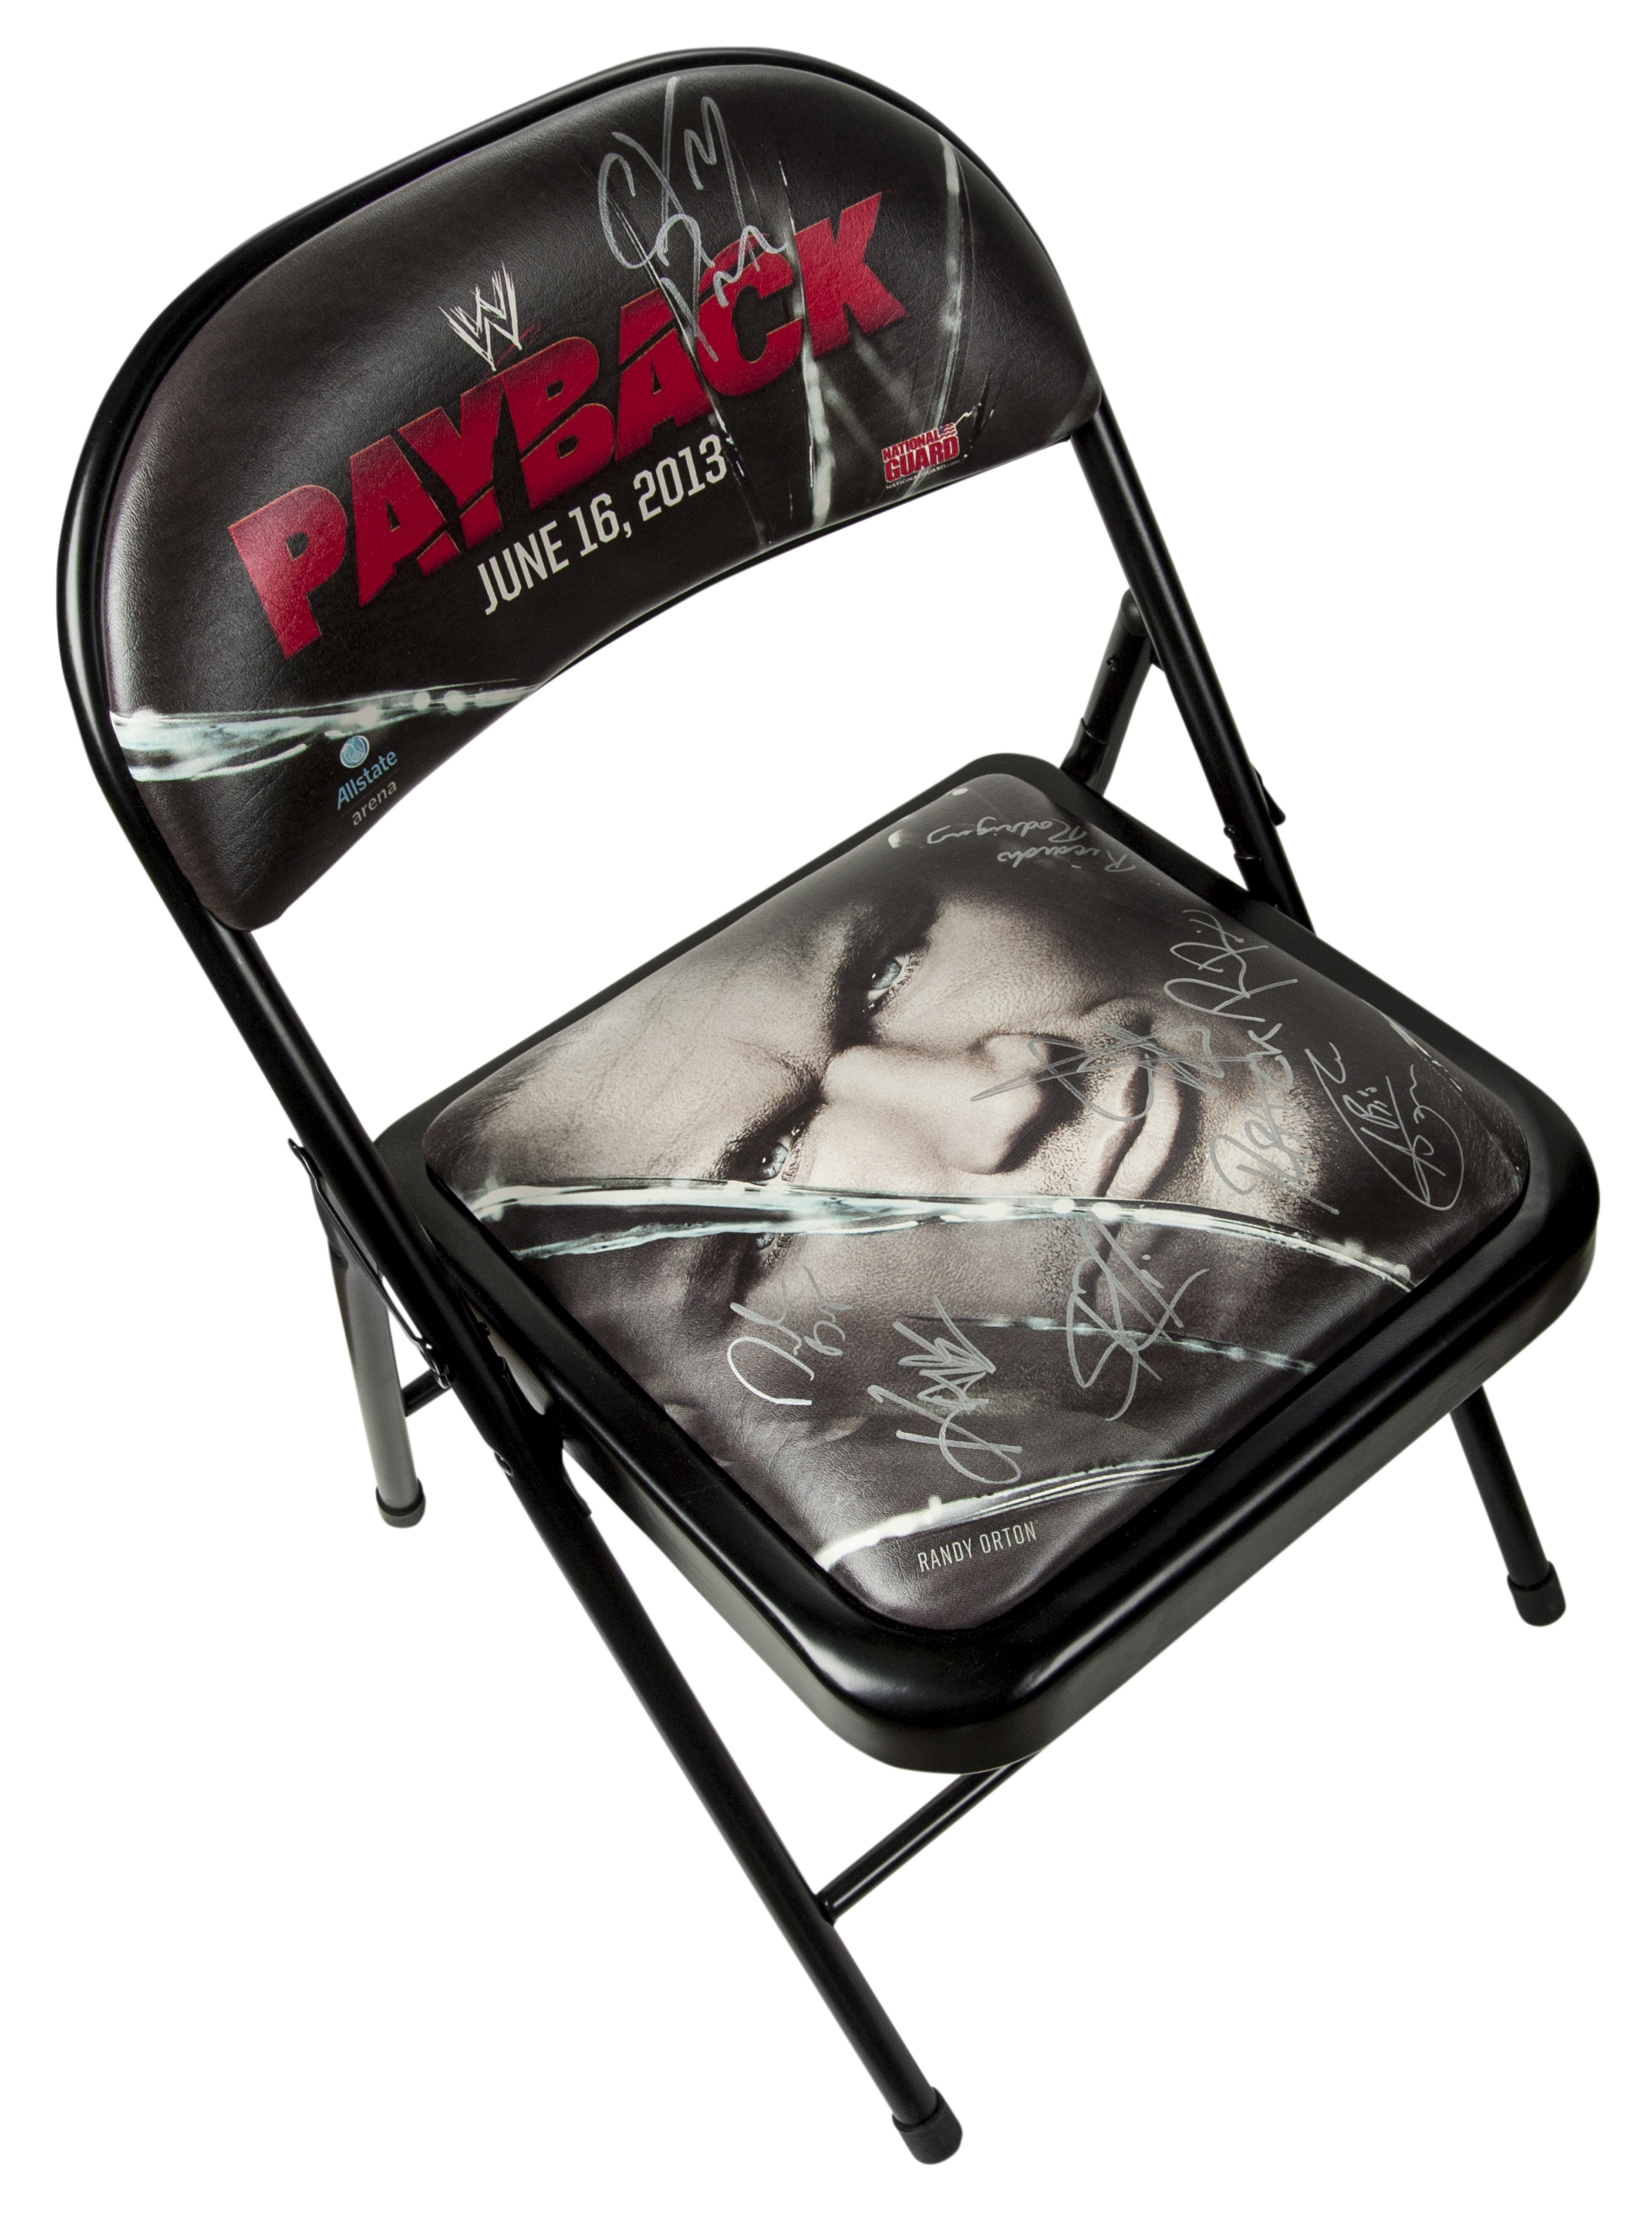 steel chair in wrestling blue and white lot detail wwe payback multi signed metal psa dna